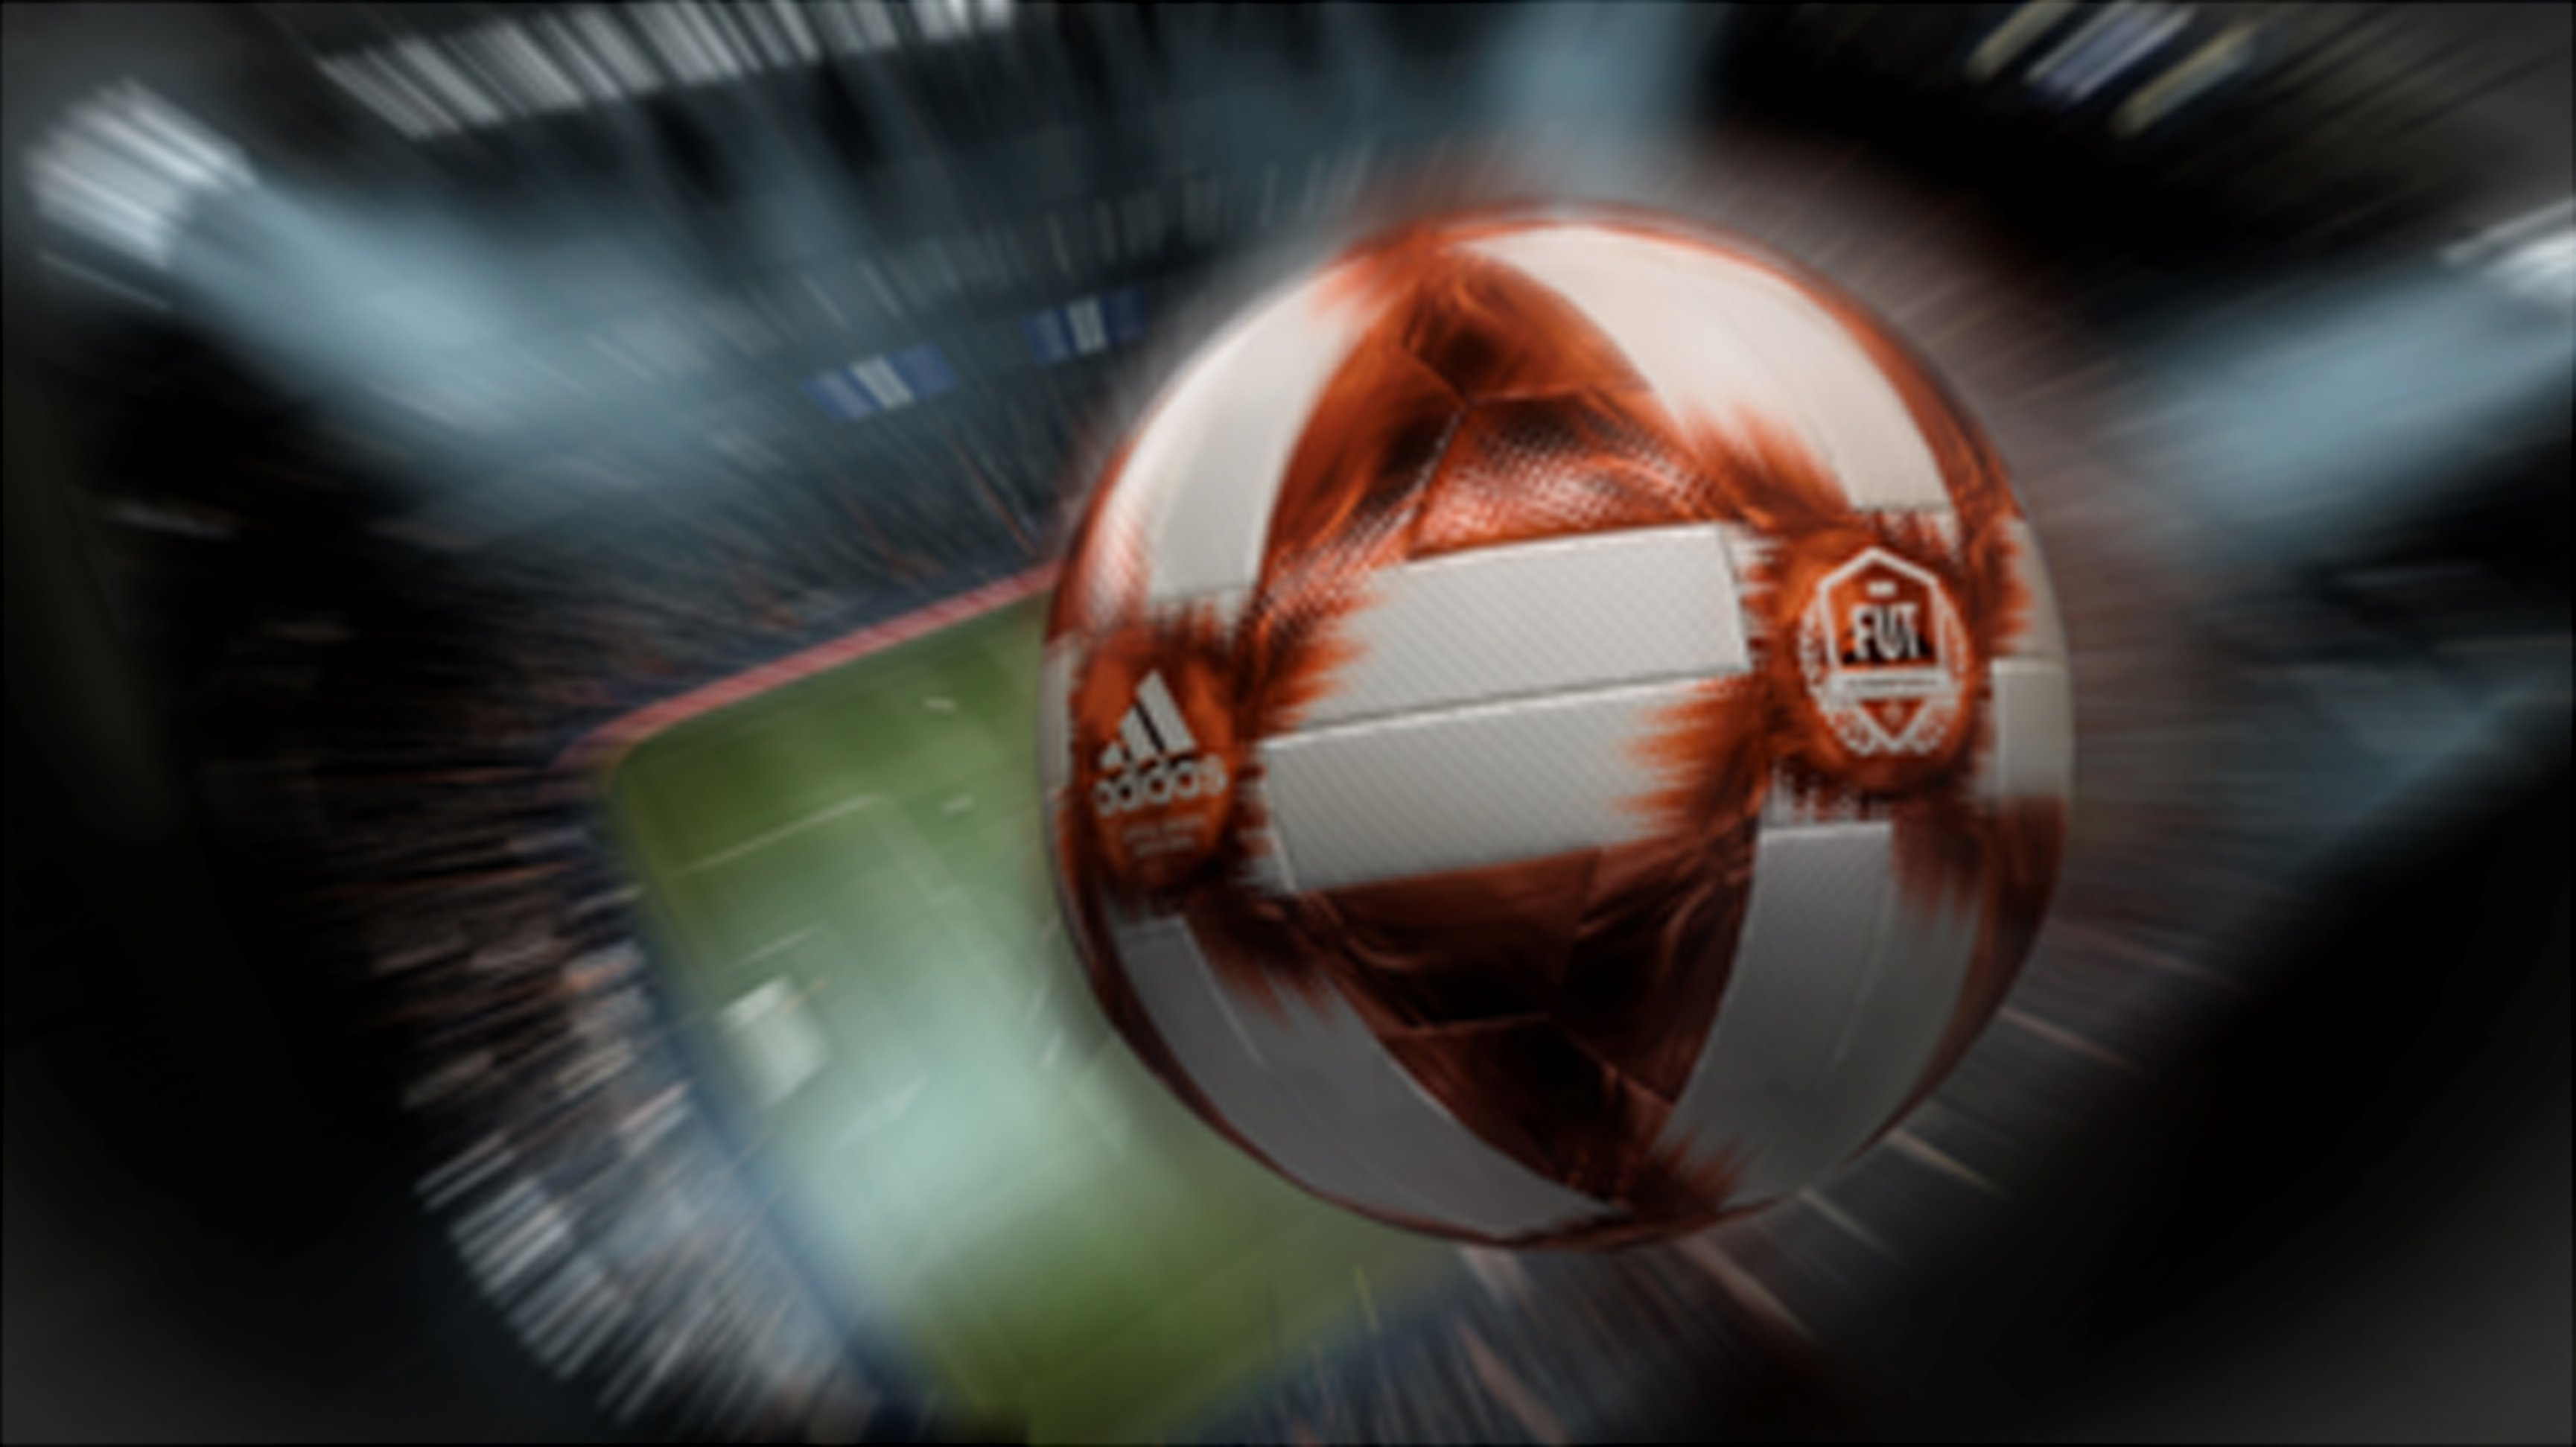 FIFA 20 Global Series Match Ball